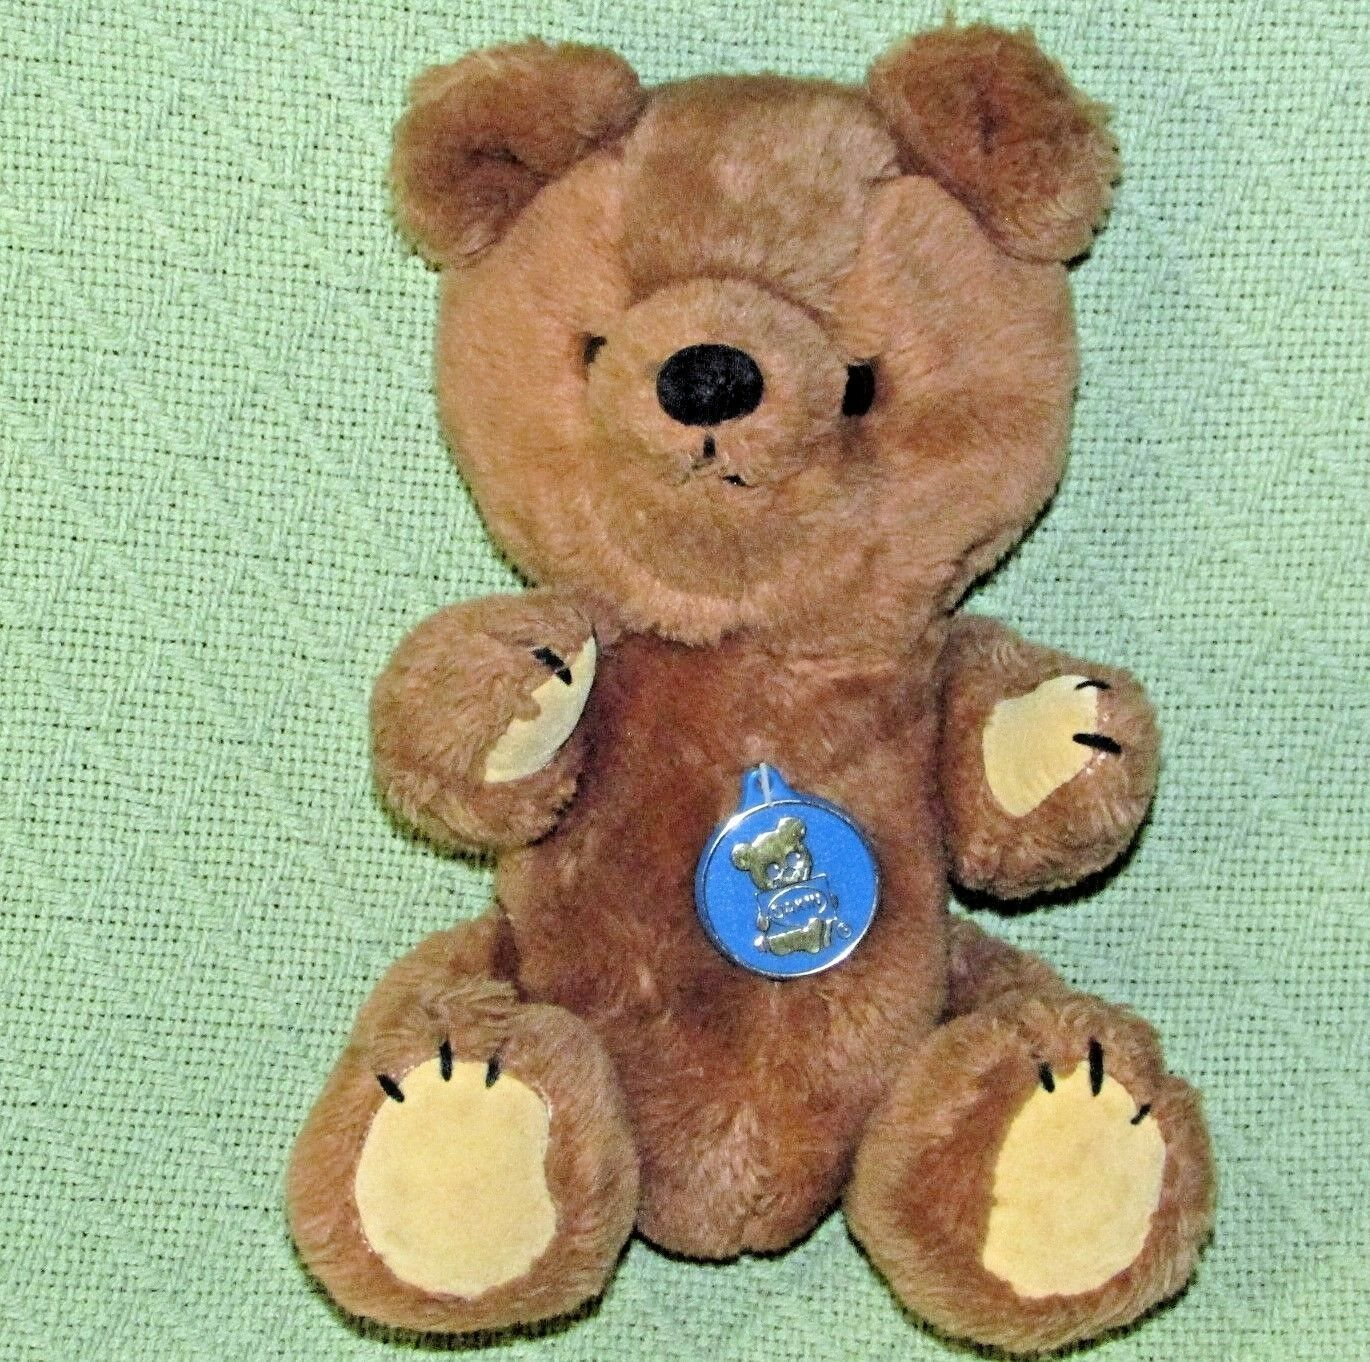 Primary image for Vintage DAKIN TEDDY BEAR JOINTED 1981 Brown BLUE PLASTIC TAG Suede Paws Plush